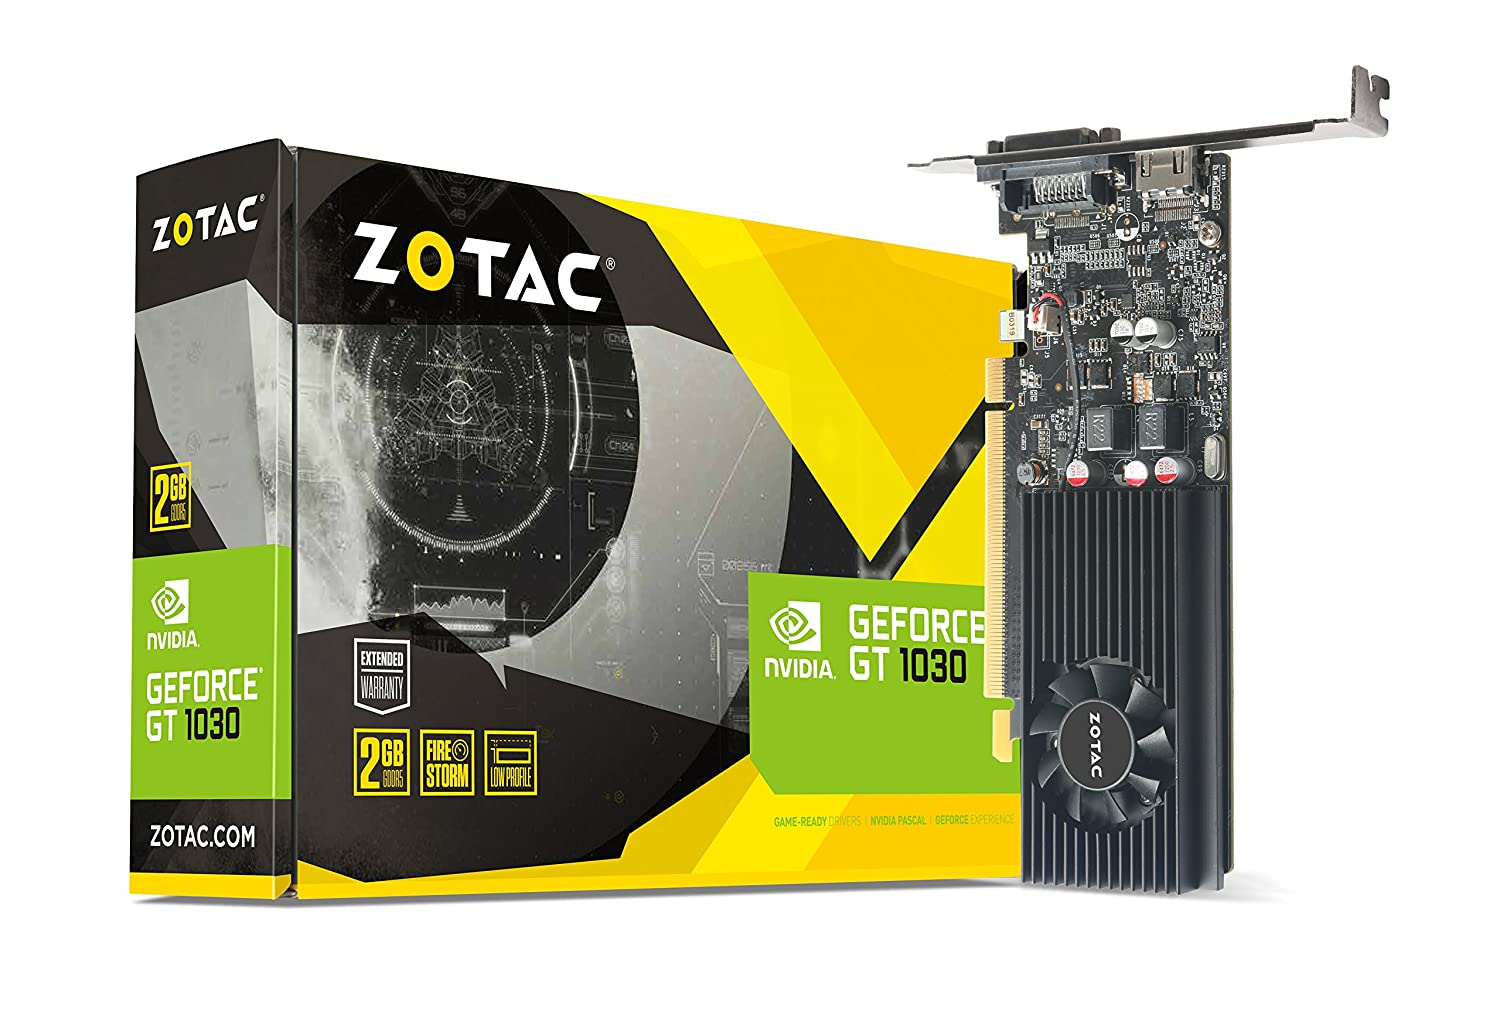 Zotac GeForce GT 1030 2GB GDDR5 Graphics Card with GeForce Experience